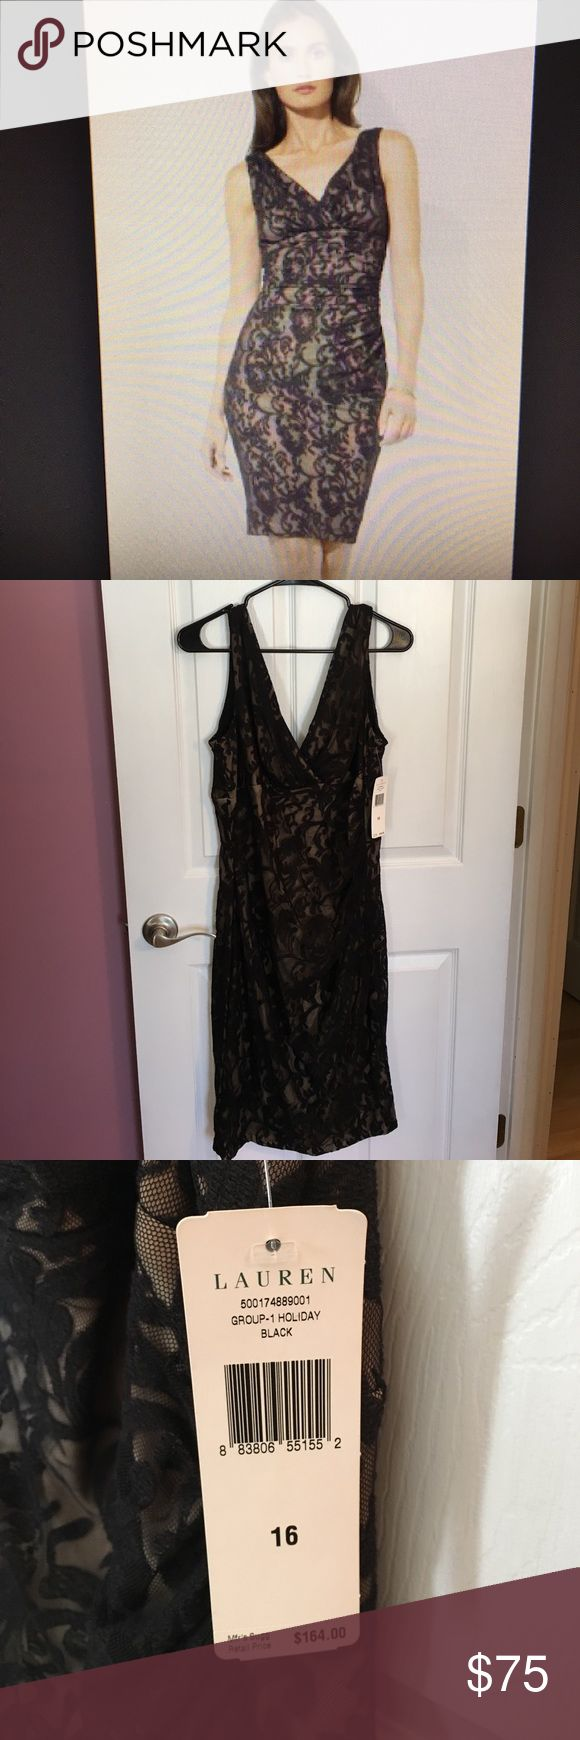 The perfect evening event dress! This dress is beyond beautiful not to mention timeless and classy. Black lace over nude slip keeps it sexy and classy. V neck. Brand new with tags, never worn! No zippers, had some stretch. Straps do have bra holders built in. Some side touching makes a flattering effect. Absolutely gorgeous! My loss your gain! Clean, smoke free home. Lauren Ralph Lauren Dresses